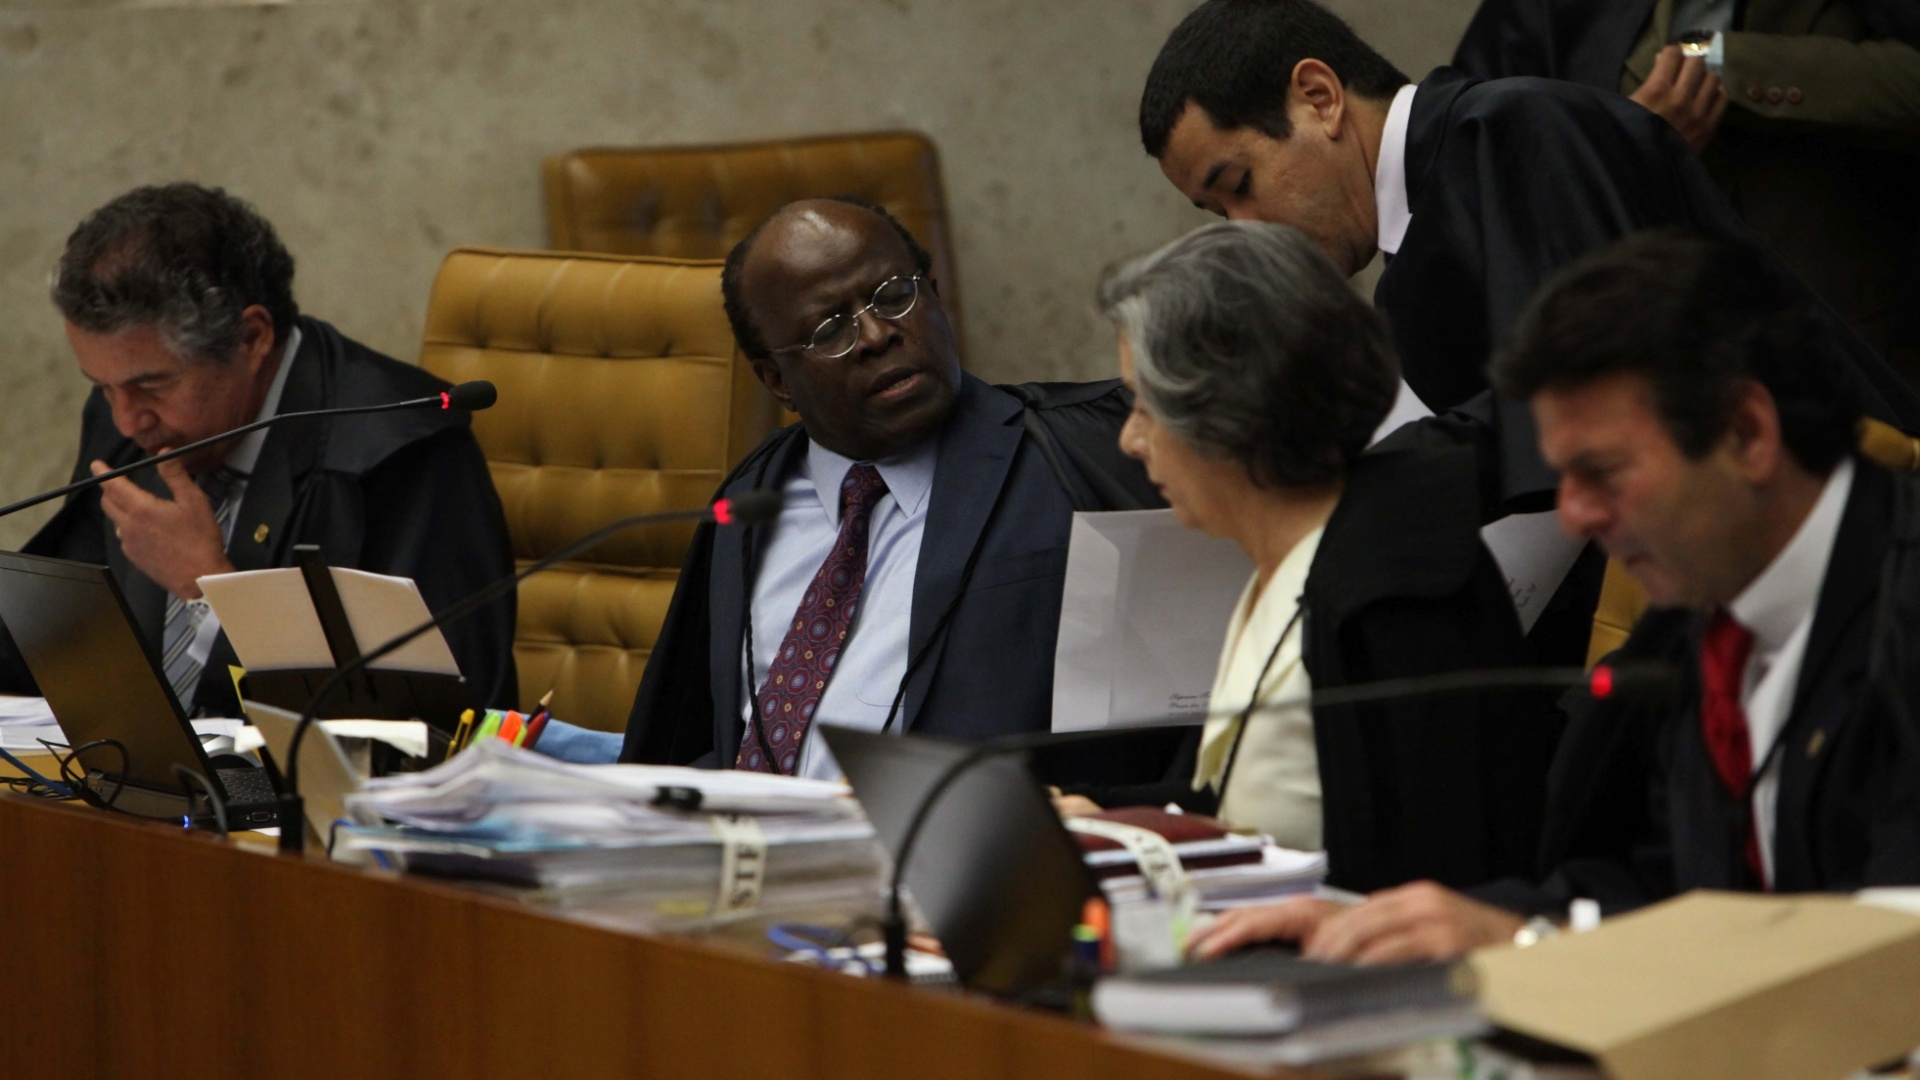 7.nov.2012 - O ministro-relator do processo do mensalo, Joaquim Barbosa(centro), aguarda incio da sesso de julgamento do mensalo ao lado de ministros do STF. Para agilizar a fixao das penas do rus condenados, Barbosa explica aos demais ministros que fez uma tabela para cada ru, especificando cada crime e os critrios usados para calcular cada pena